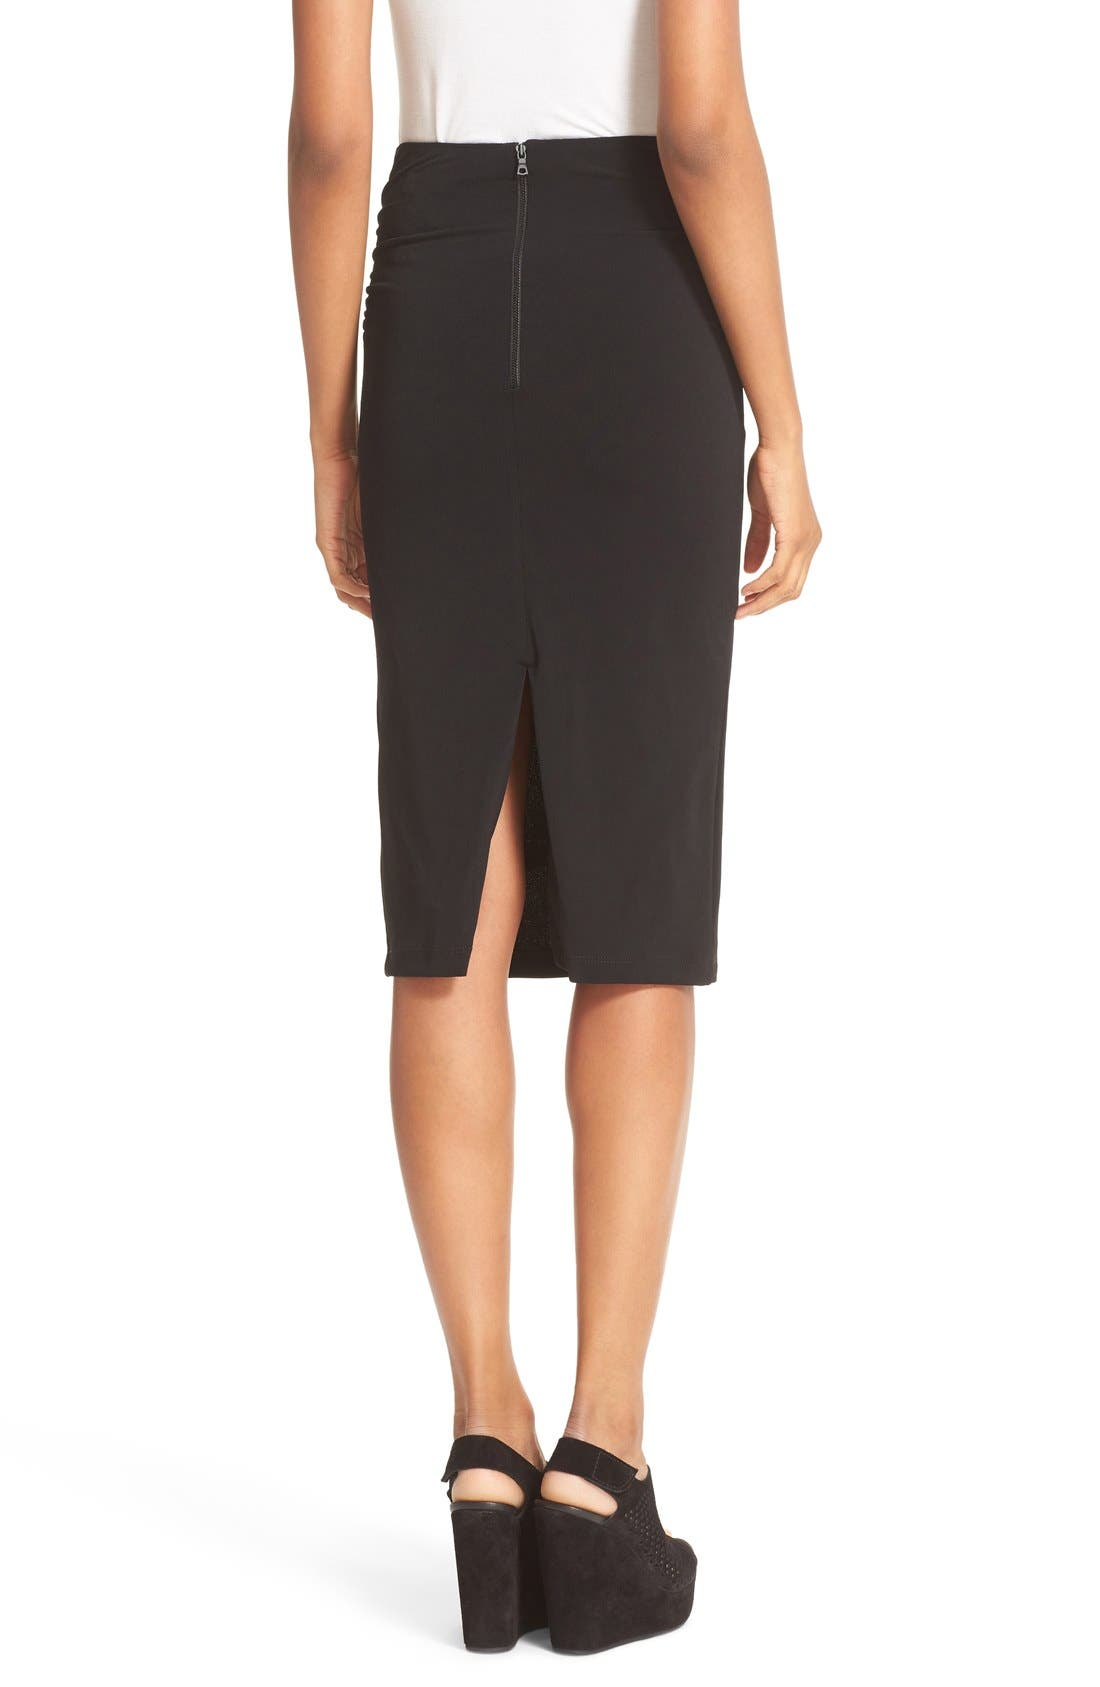 ALICE + OLIVIA,                             Ciera Side Ruched High Waist Pencil Skirt,                             Alternate thumbnail 3, color,                             001